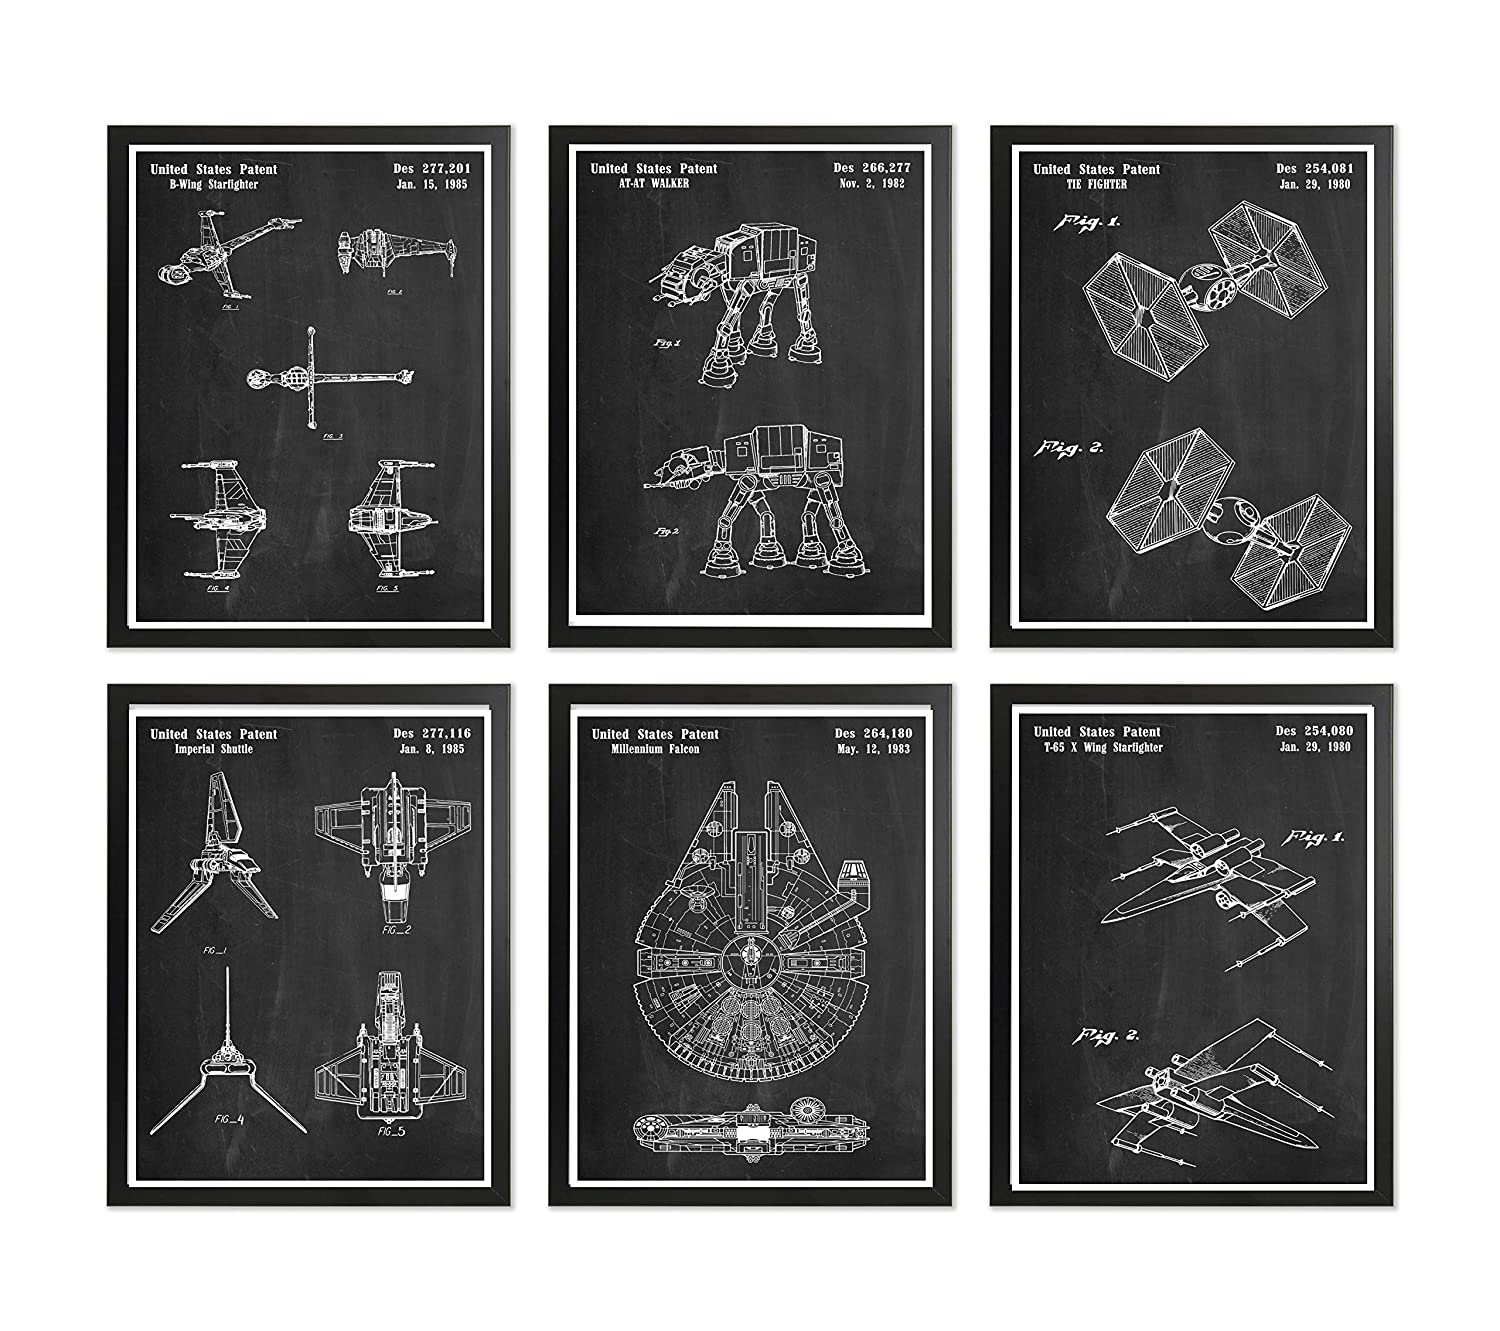 Framed Star Wars Patent Poster Super Set Chalkboard Star Wars Space Crafts Wall Art Prints B Wing Home Decor X Wing Room Decor Millennium Falcon Tie Fighter AT-AT Walker Imperial Shuttle House Decor